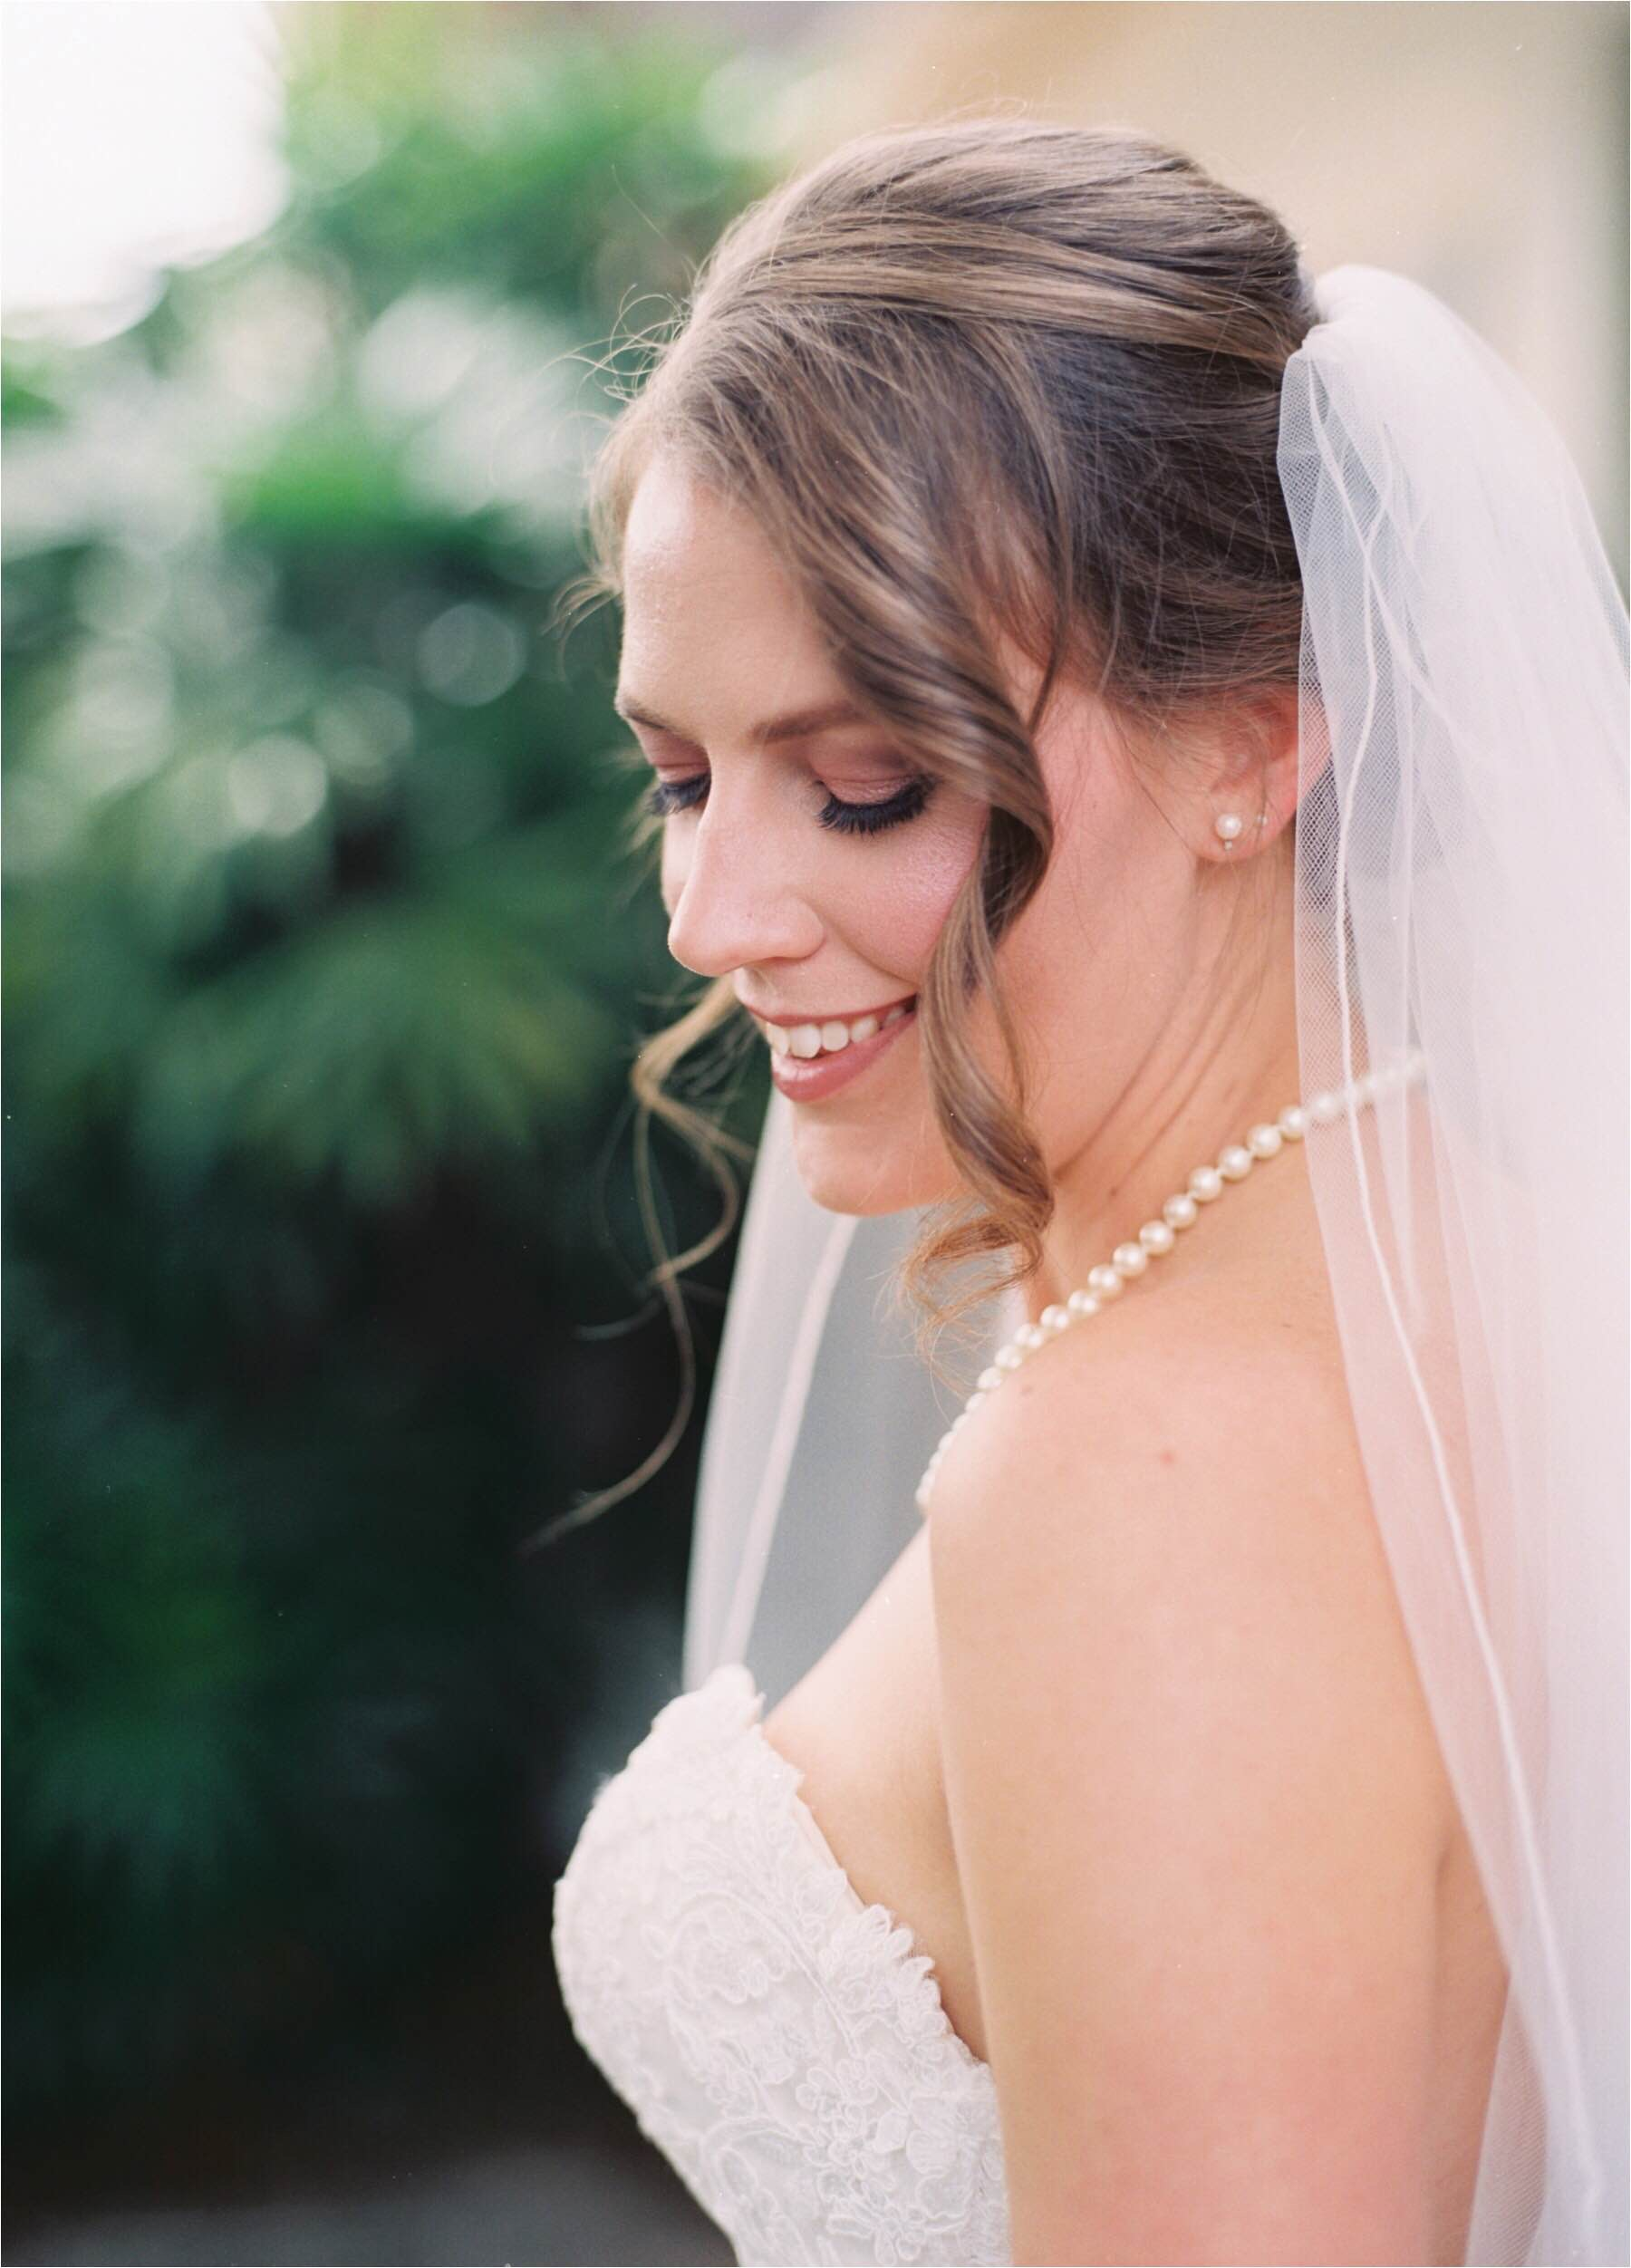 bridal and wedding makeup services | last looks by karla